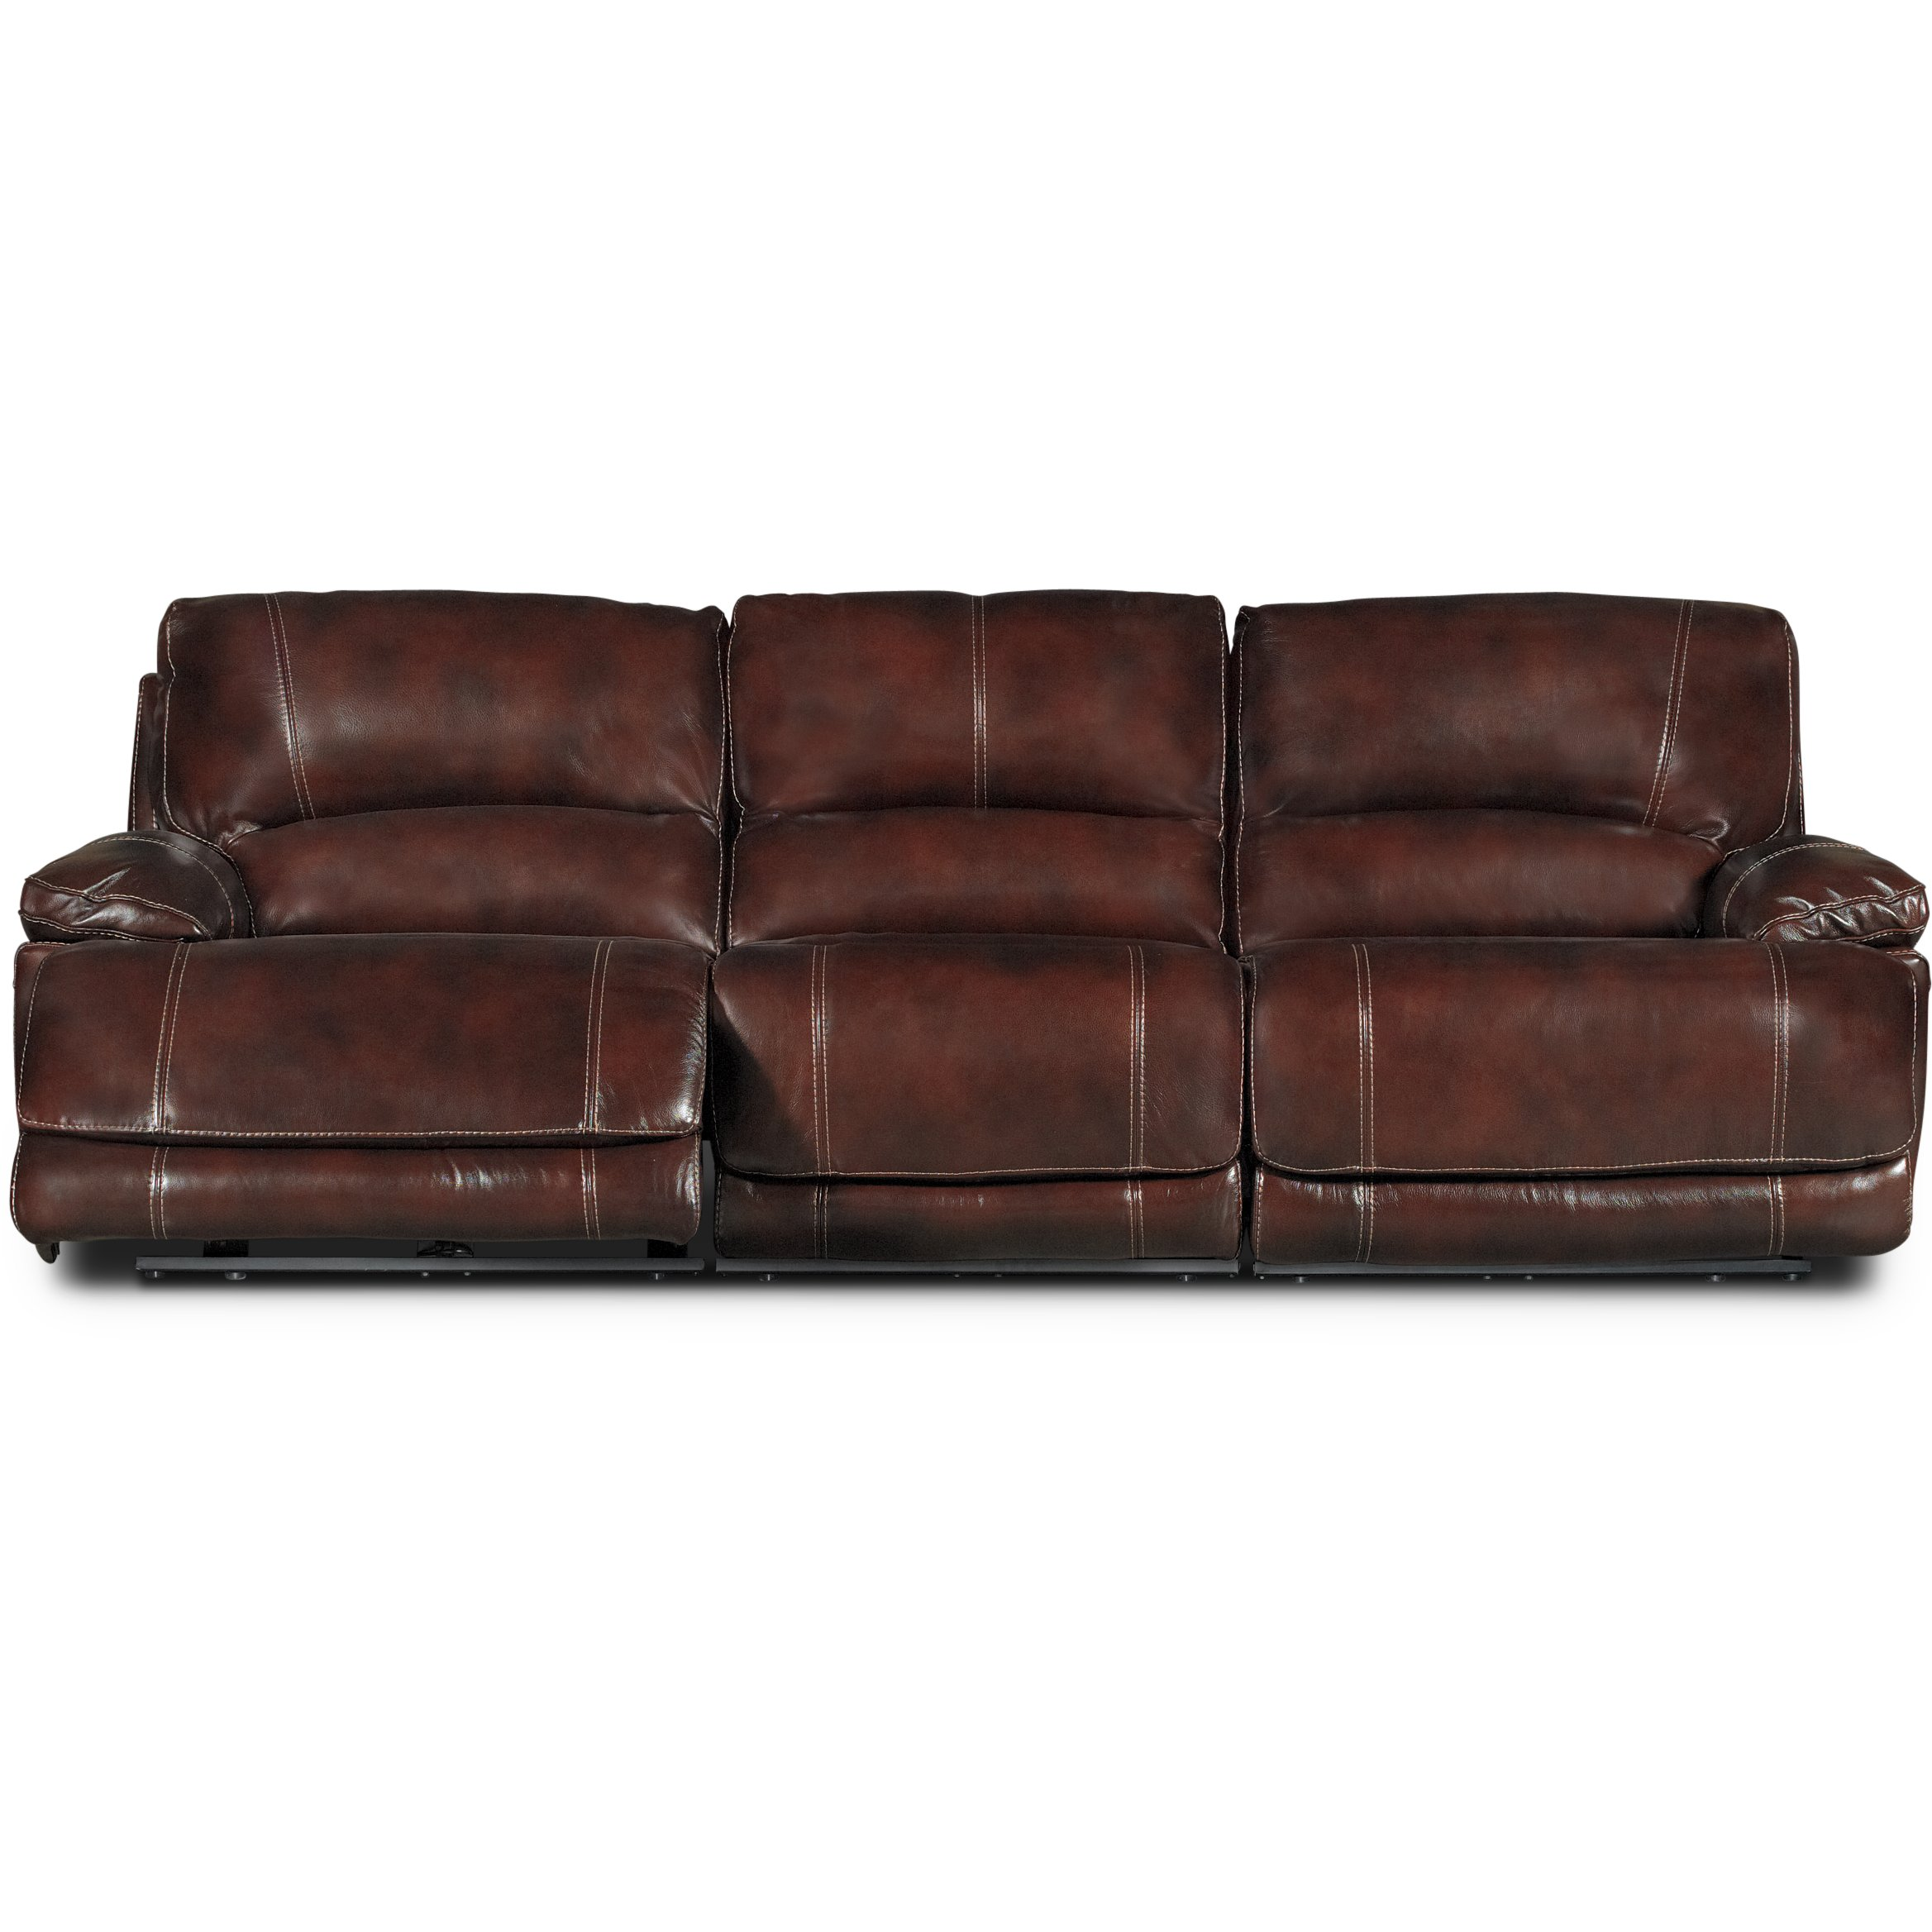 Get a reclining sofa for your living room or den from us